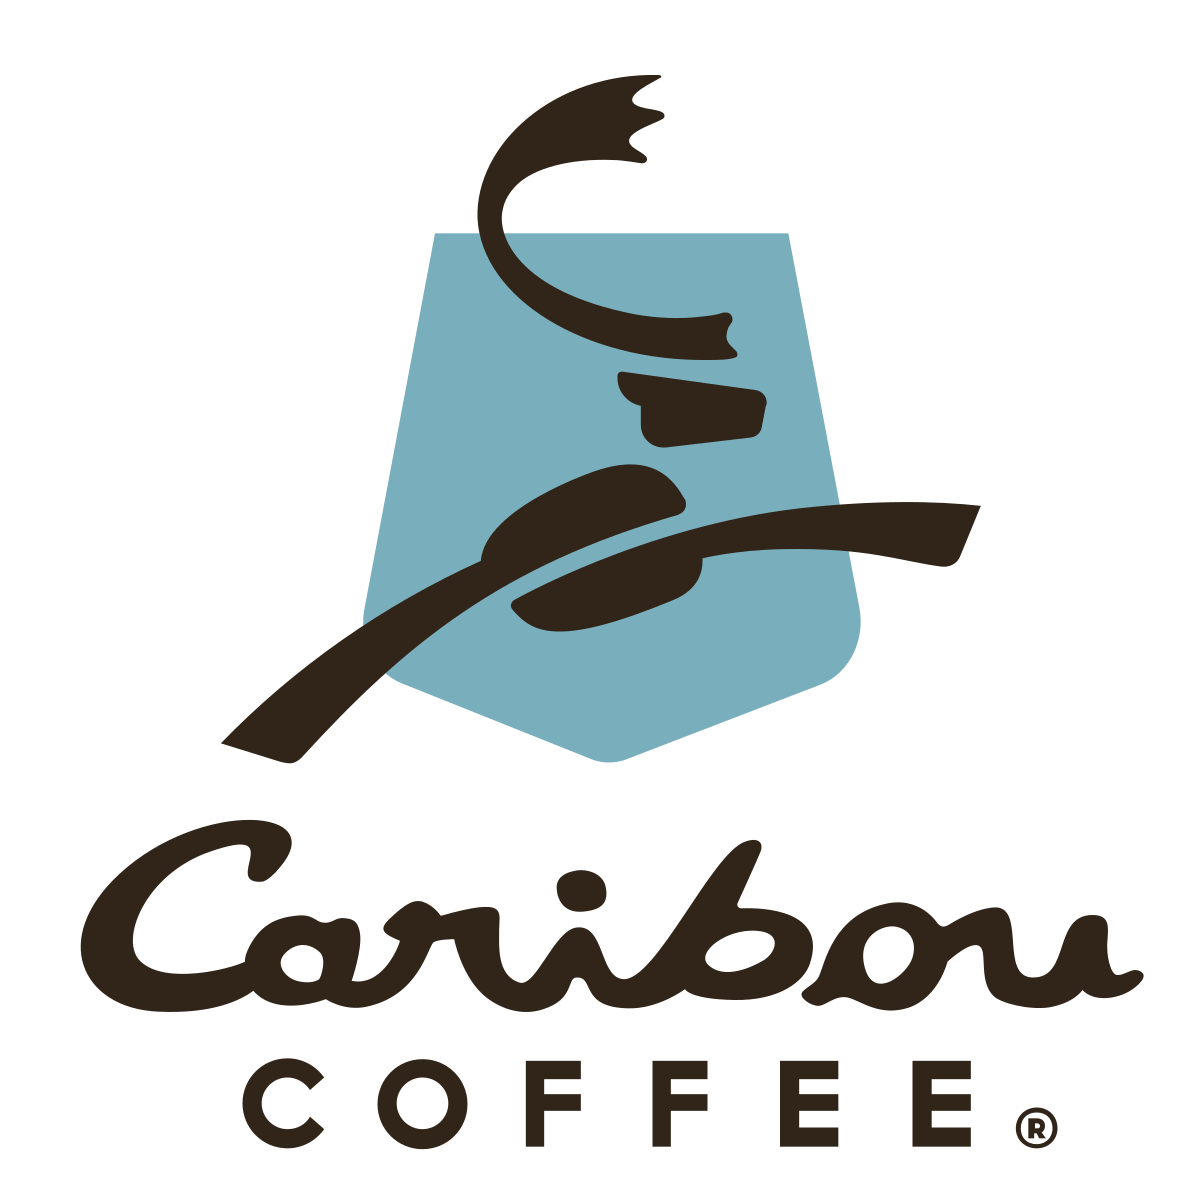 Best Coffee Shop Logo - Caribou Coffee